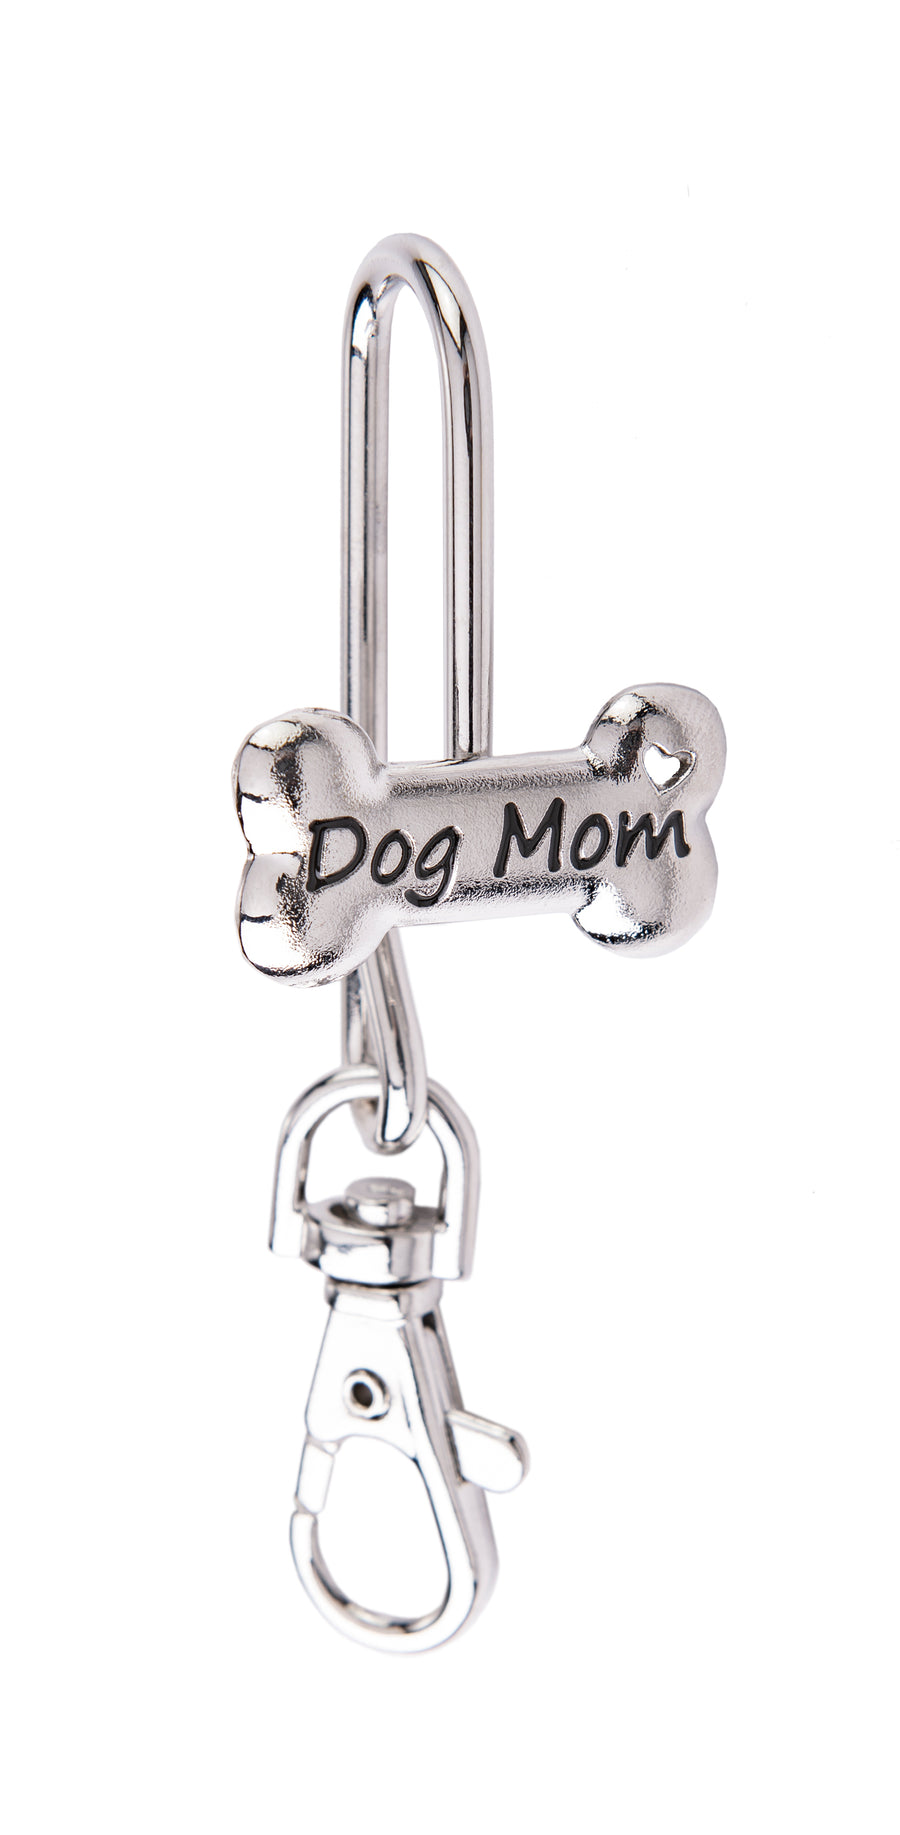 Dog Mom Finders Key Purse®